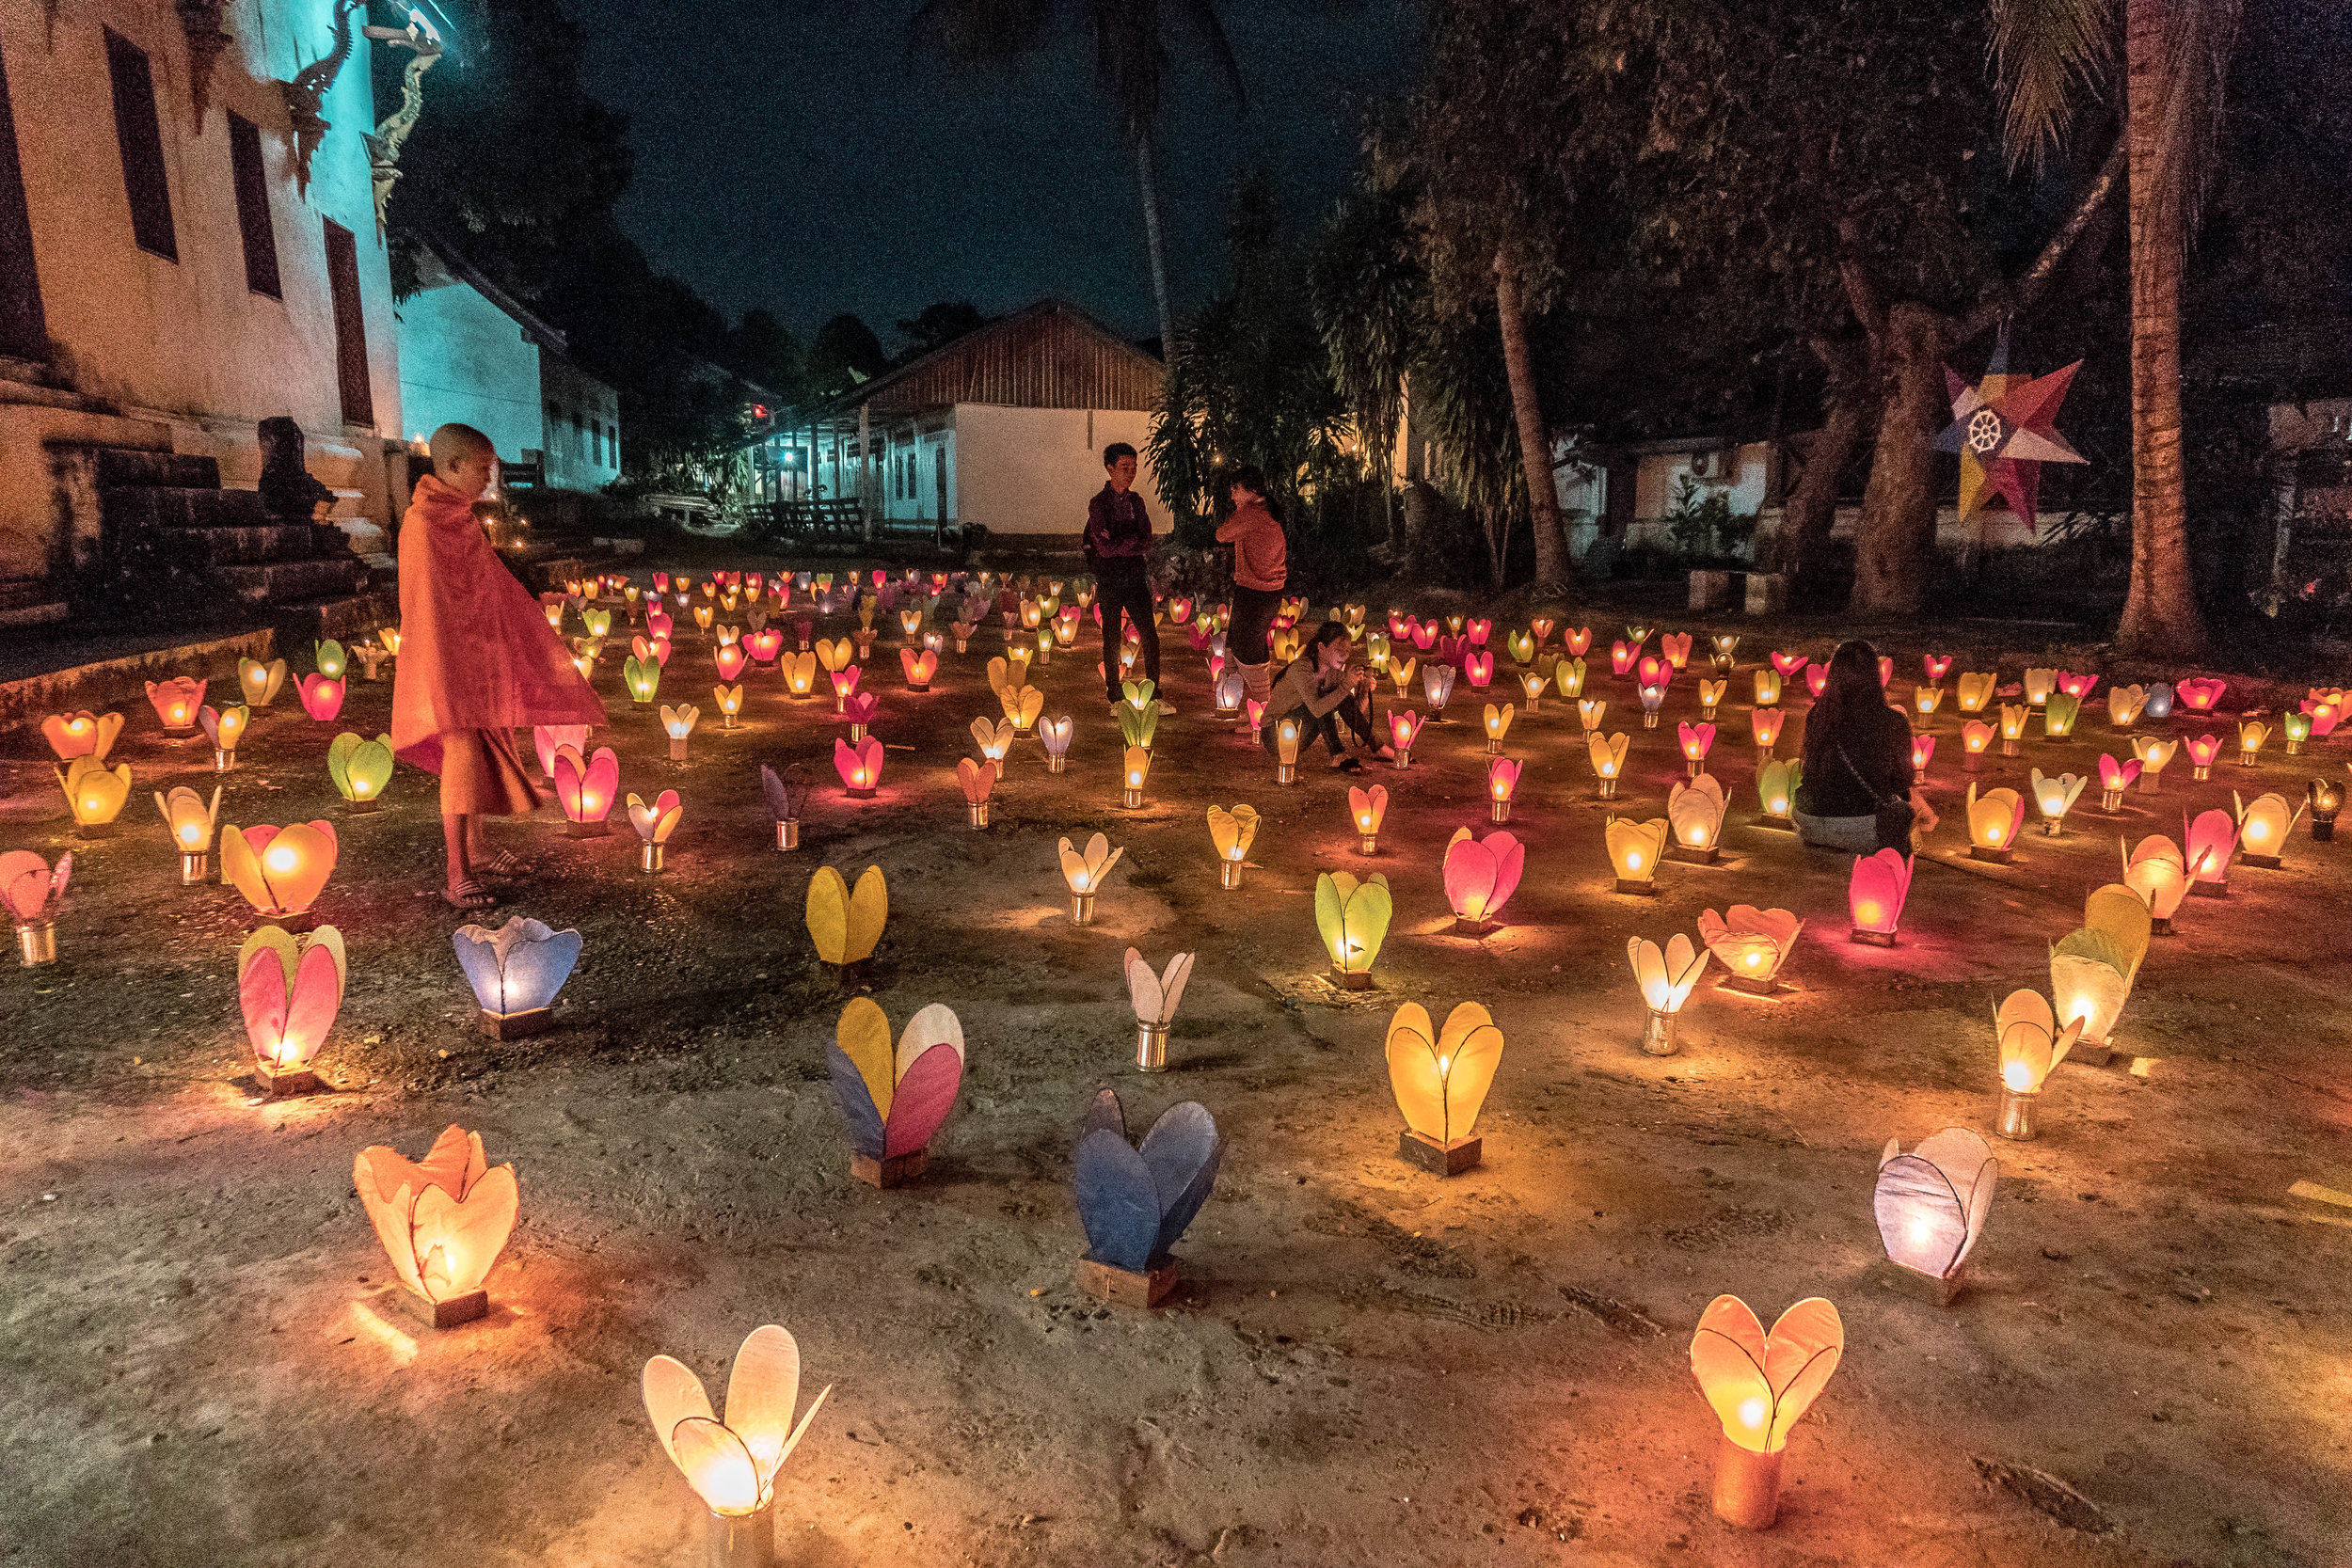 candlelight festival in luang prabang